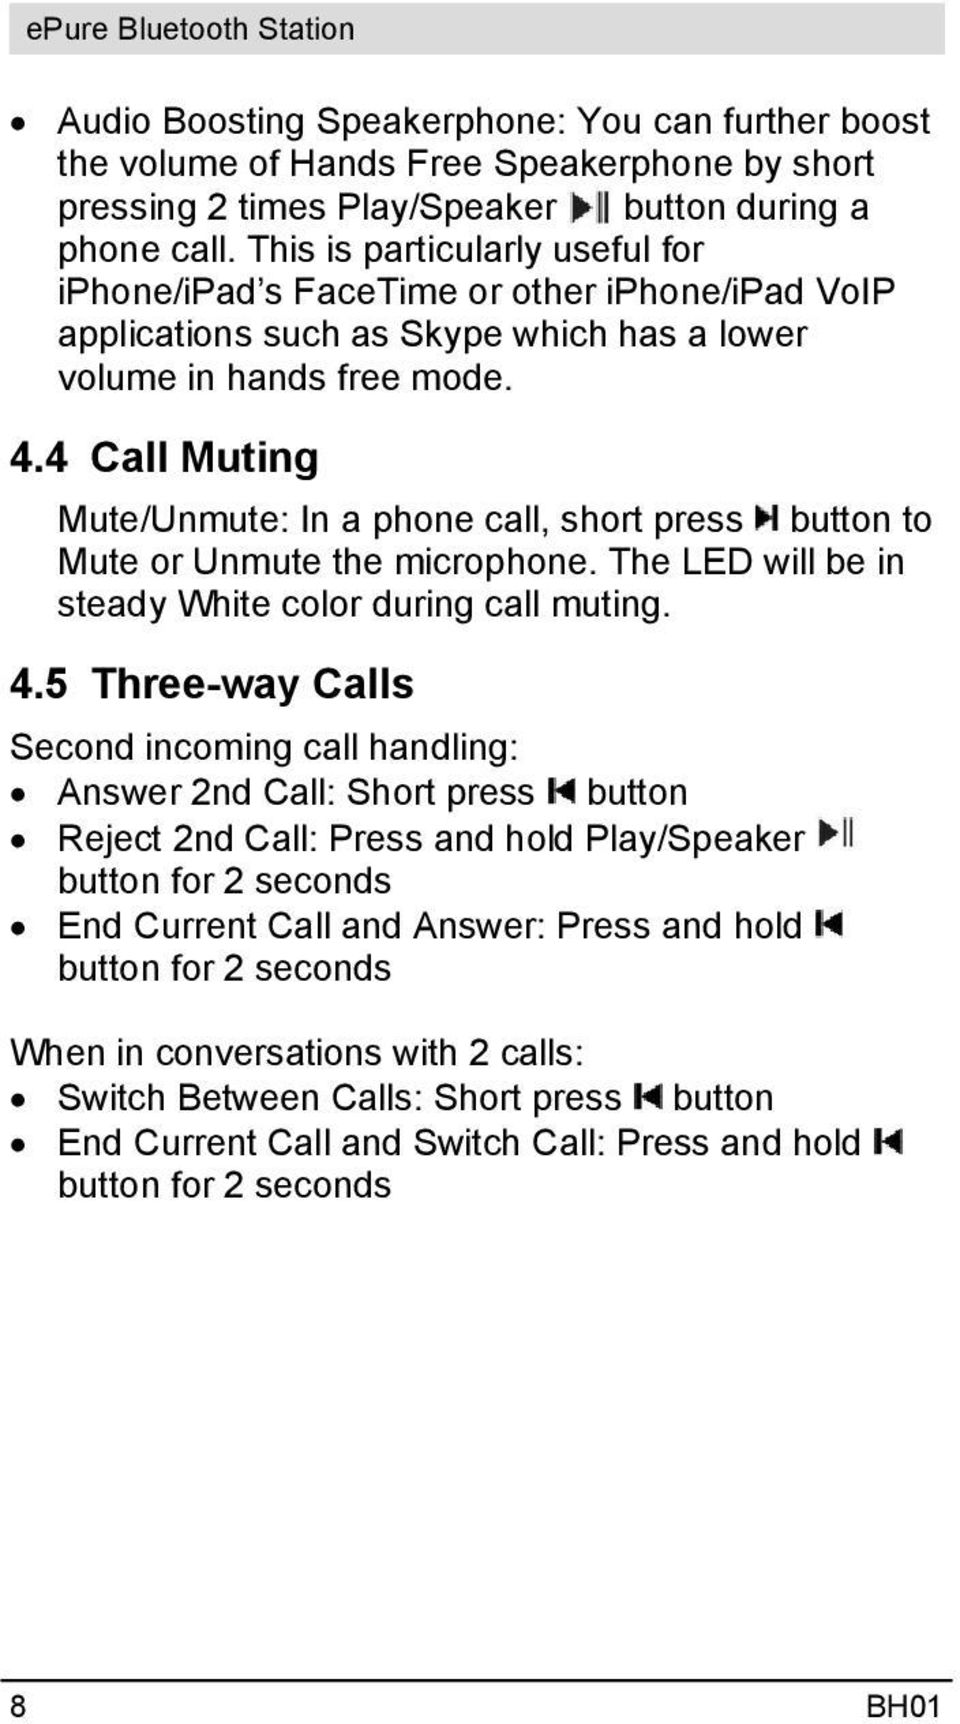 4 Call Muting Mute/Unmute: In a phone call, short press button to Mute or Unmute the microphone. The LED will be in steady White color during call muting. 4.